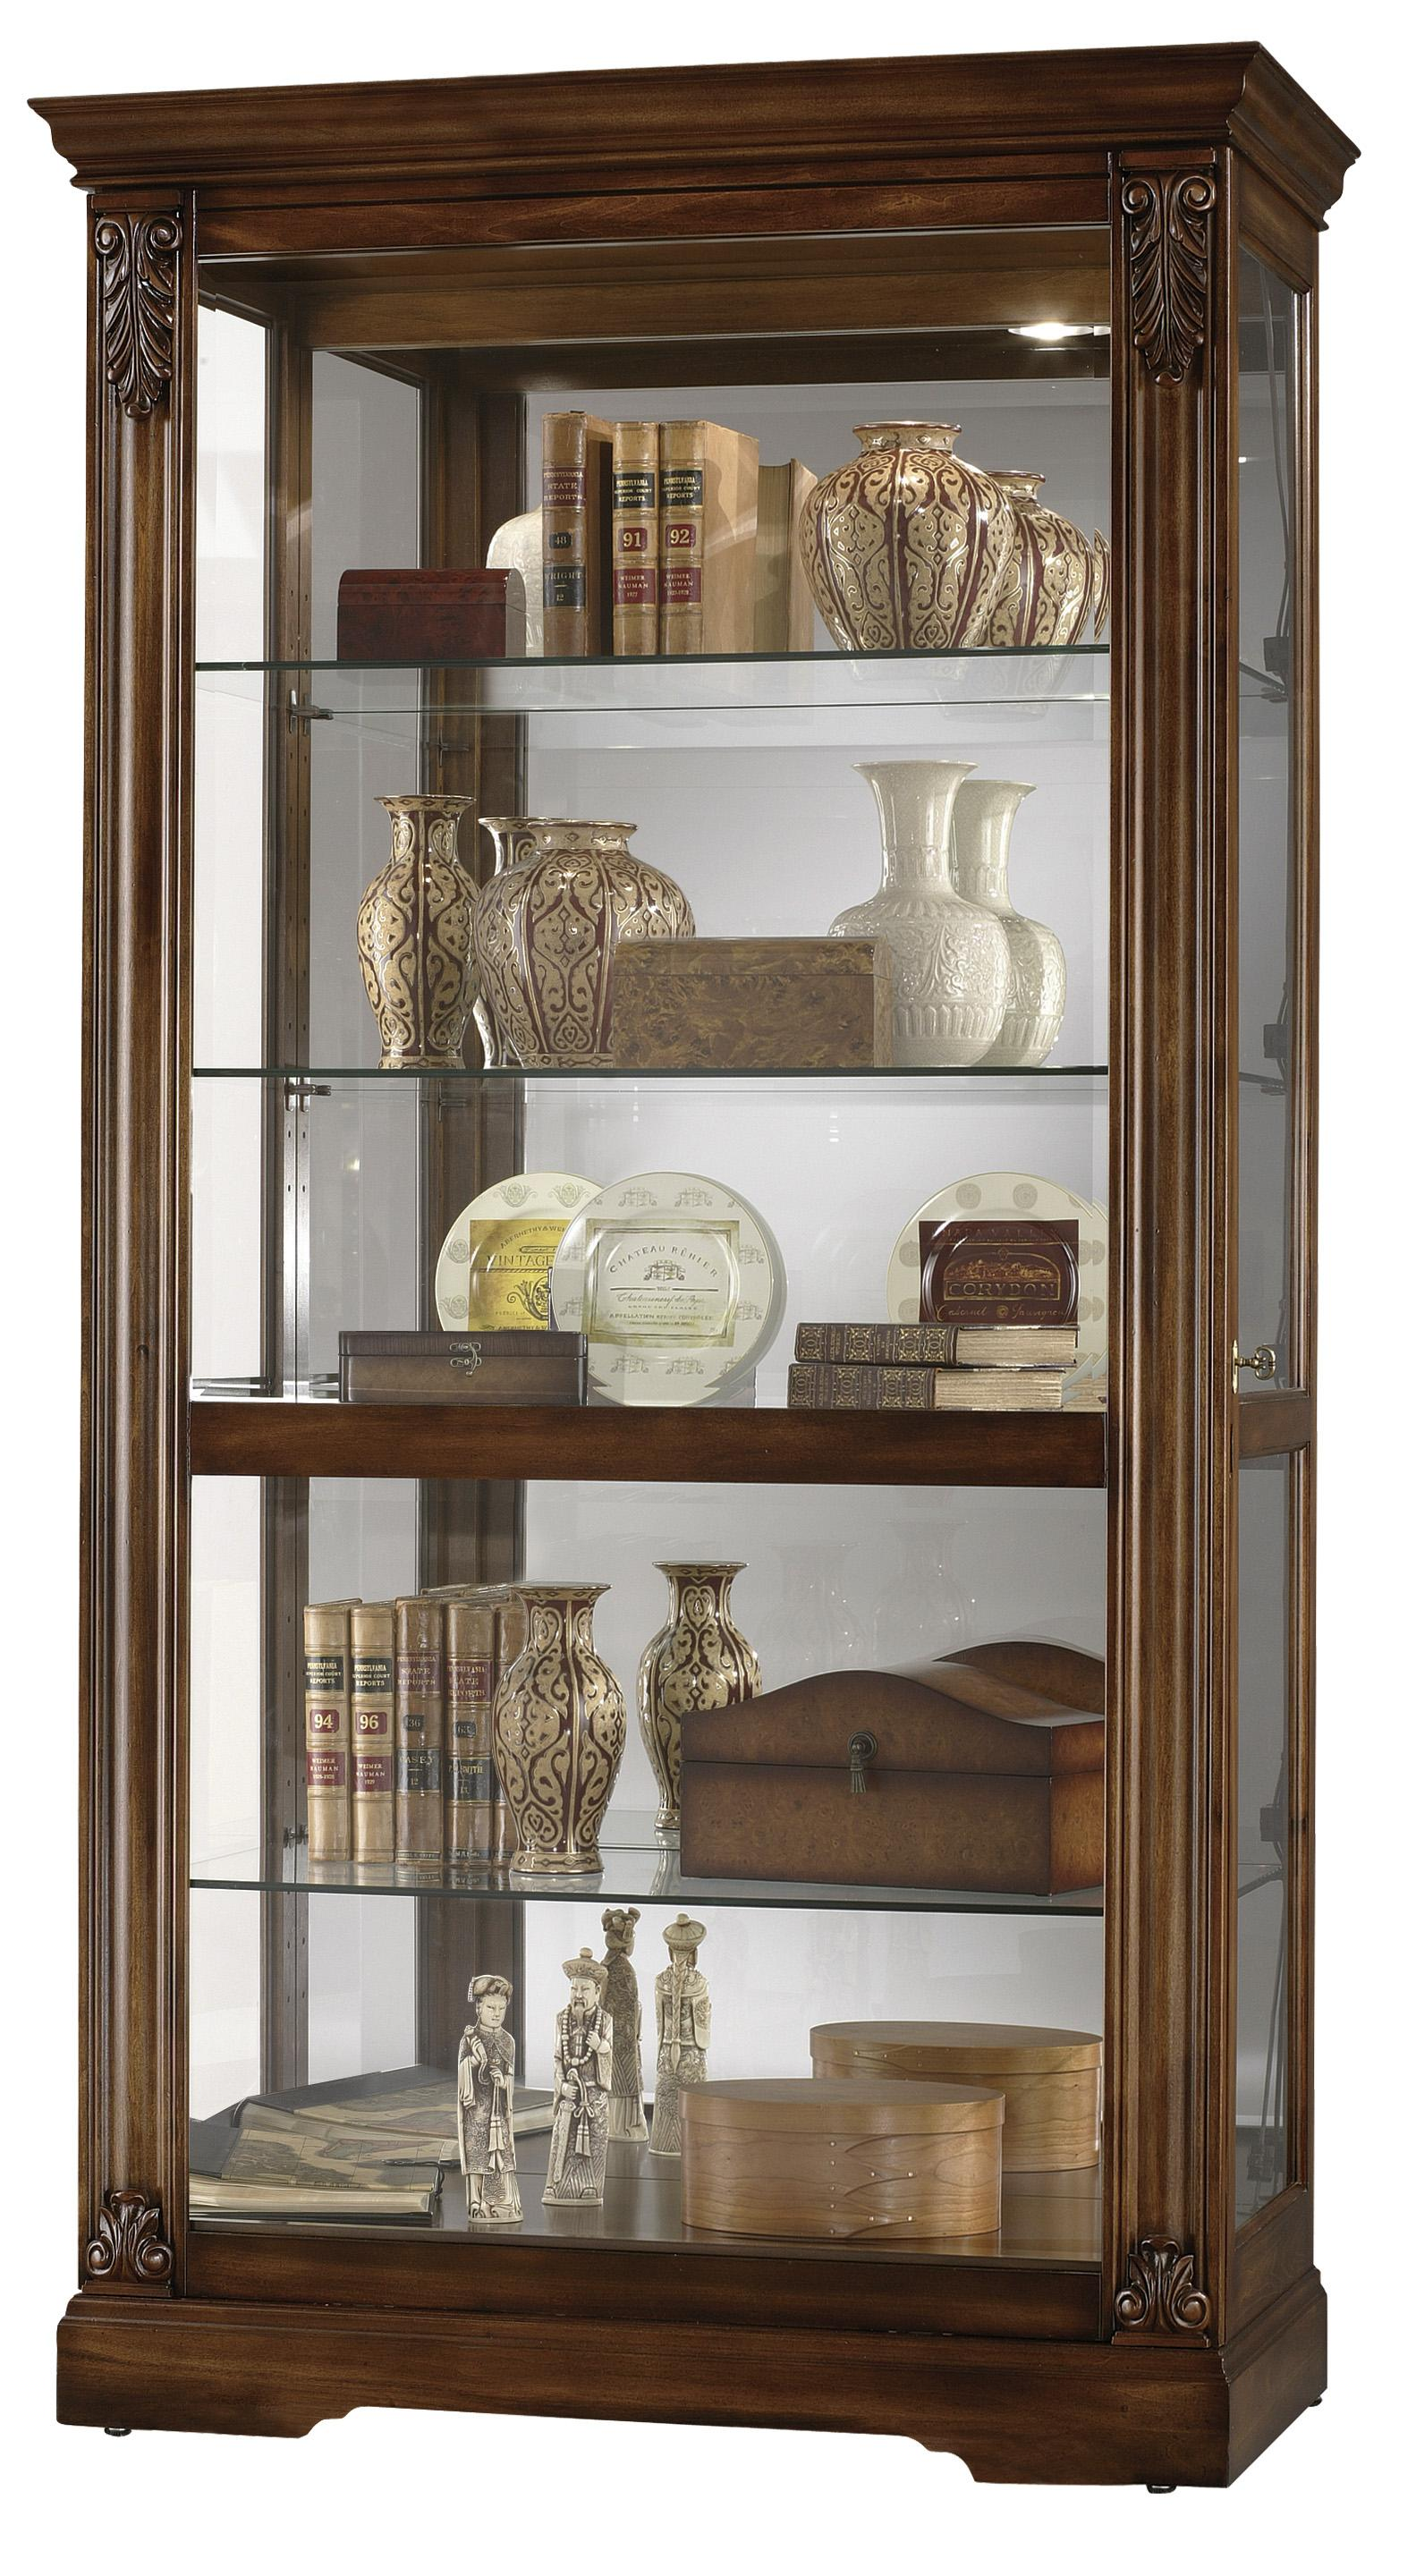 Howard Miller Furniture Trend Designs Curios Andreus Display Cabinet - Item Number: 680-479